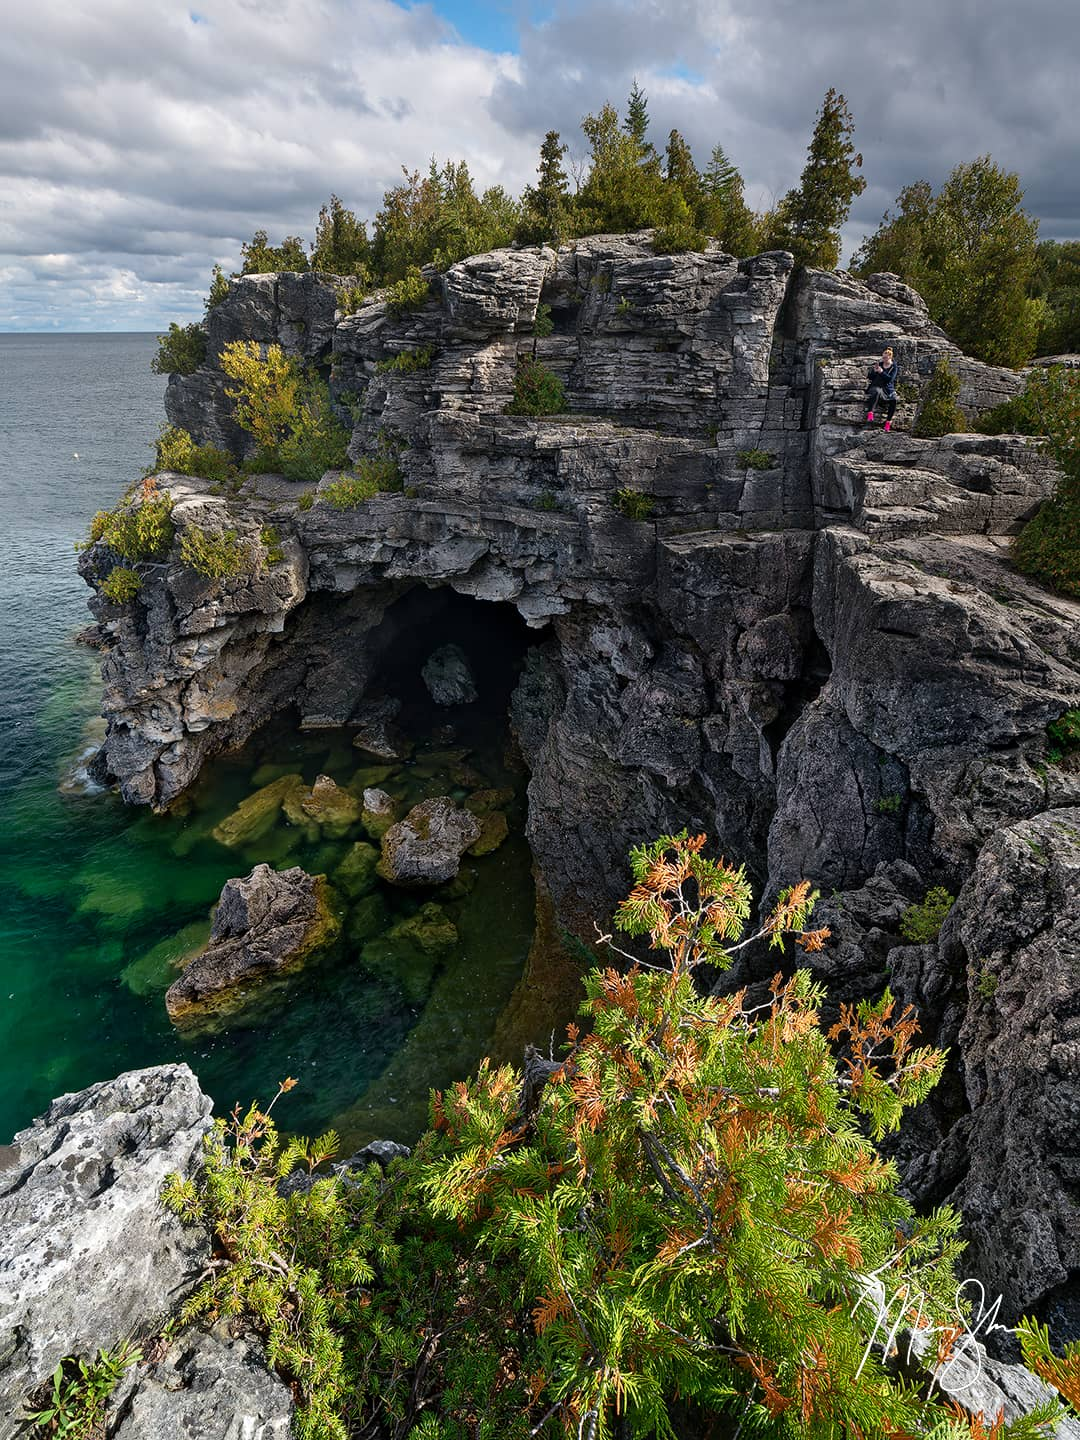 Open edition fine art print of The Grotto at Bruce Peninsula National Park from Mickey Shannon Photography. Location: Bruce Peninsula National Park, Ontario, Canada